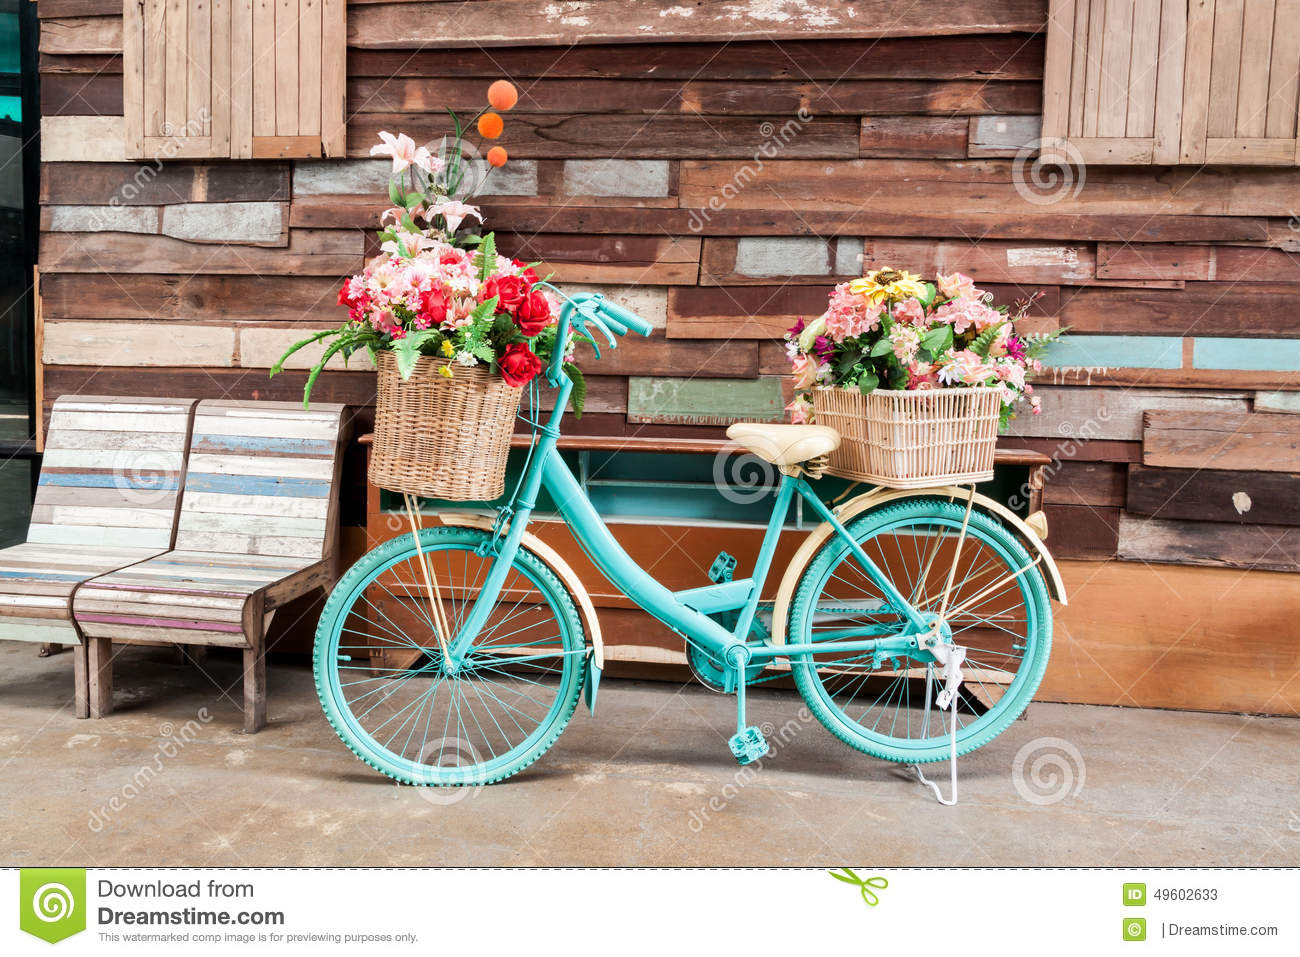 Vintage bicycle and flower stock image image of decor - Objetos de decoracion vintage ...